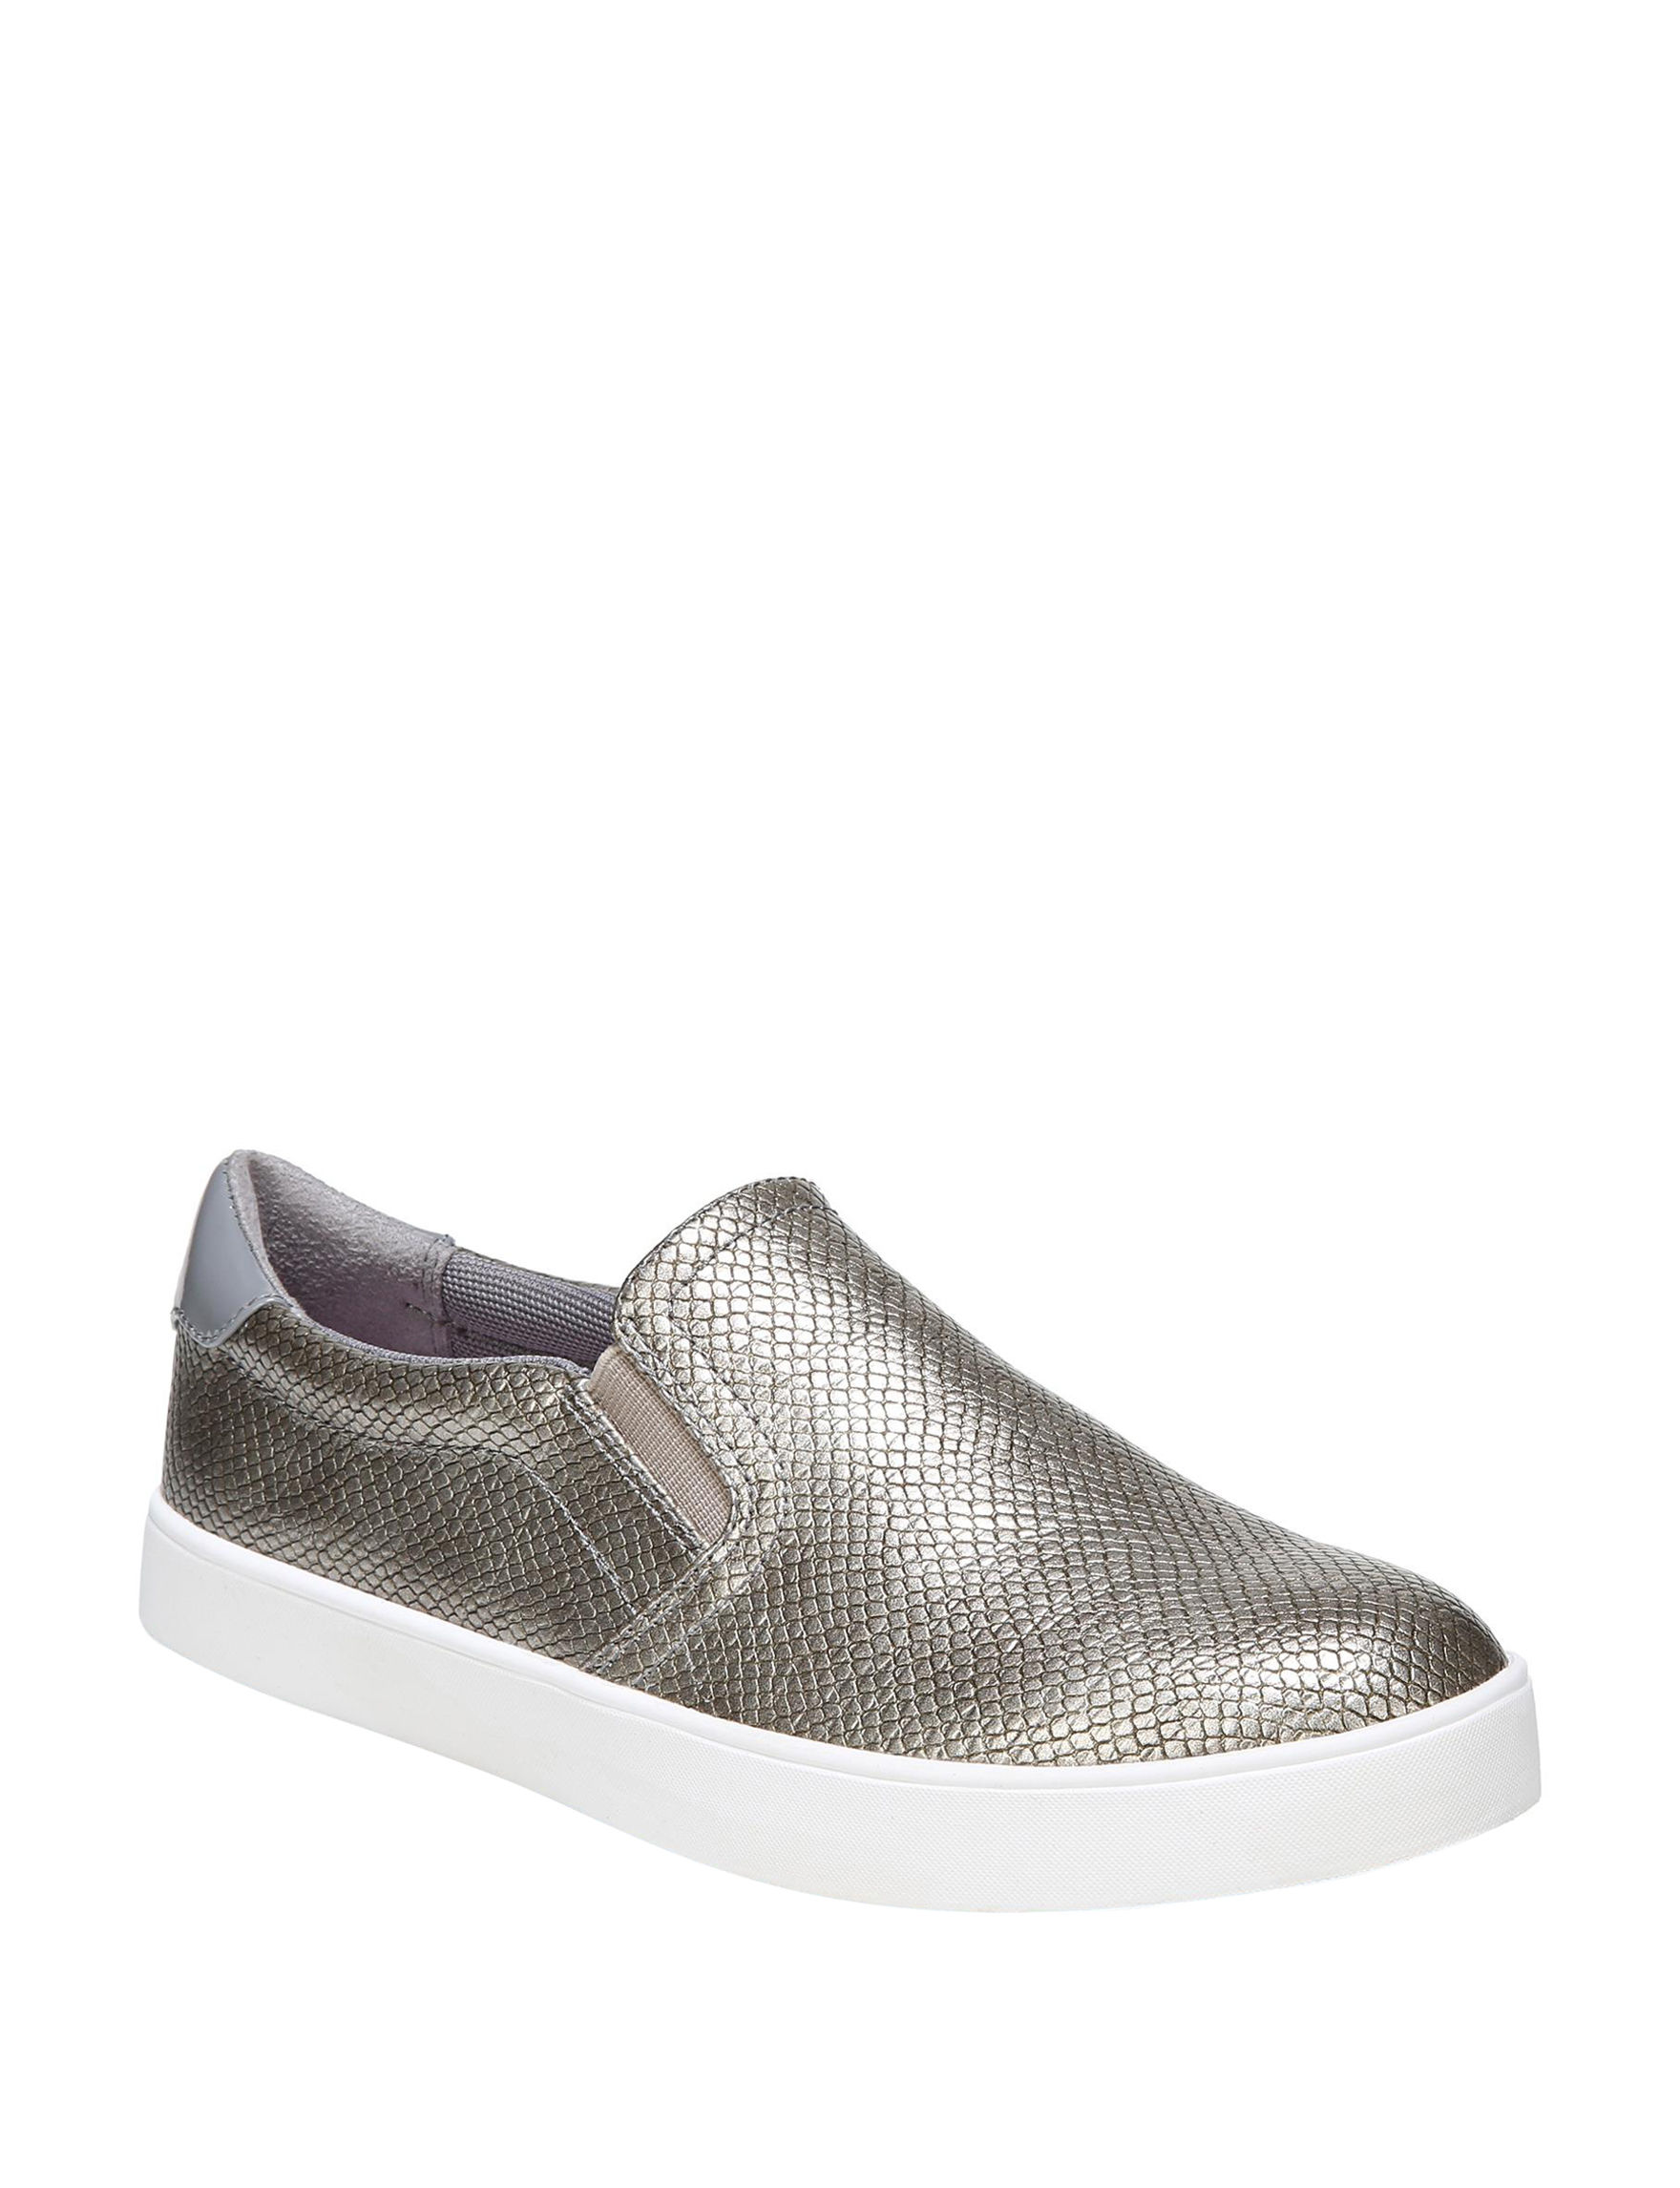 Dr. Scholl's Pewter Comfort